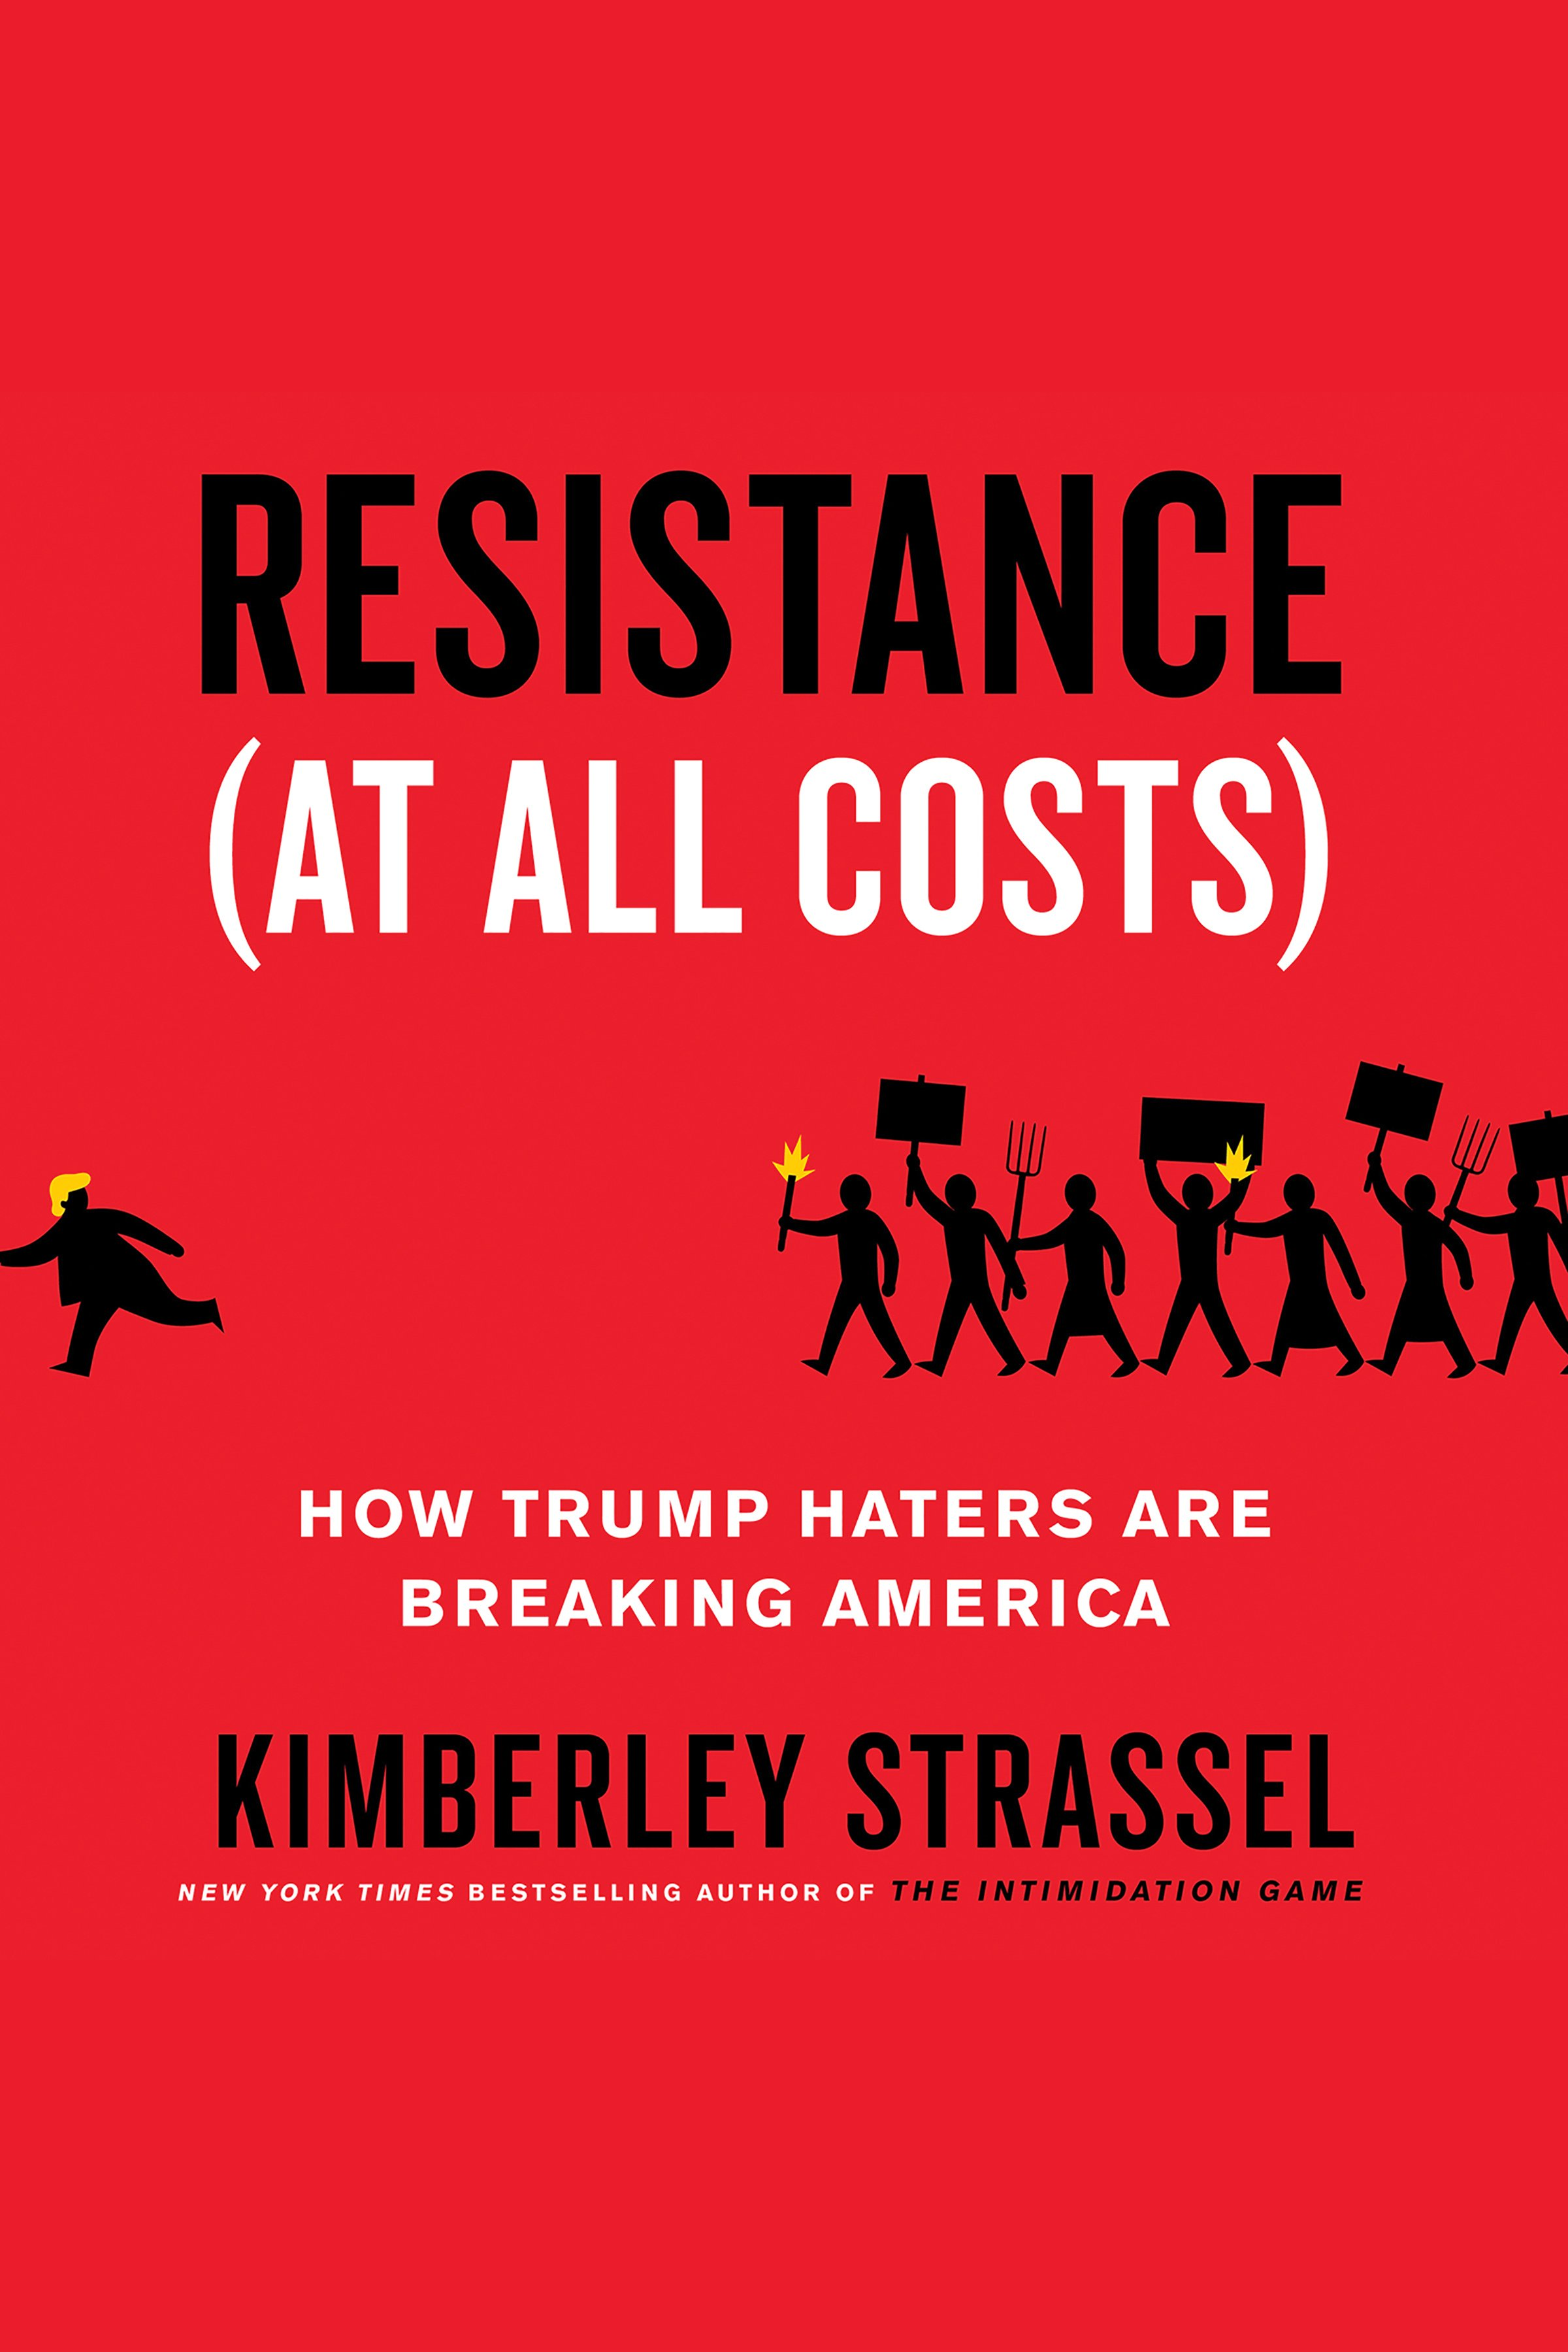 Resistance (At All Costs) How Trump Haters Are Breaking America